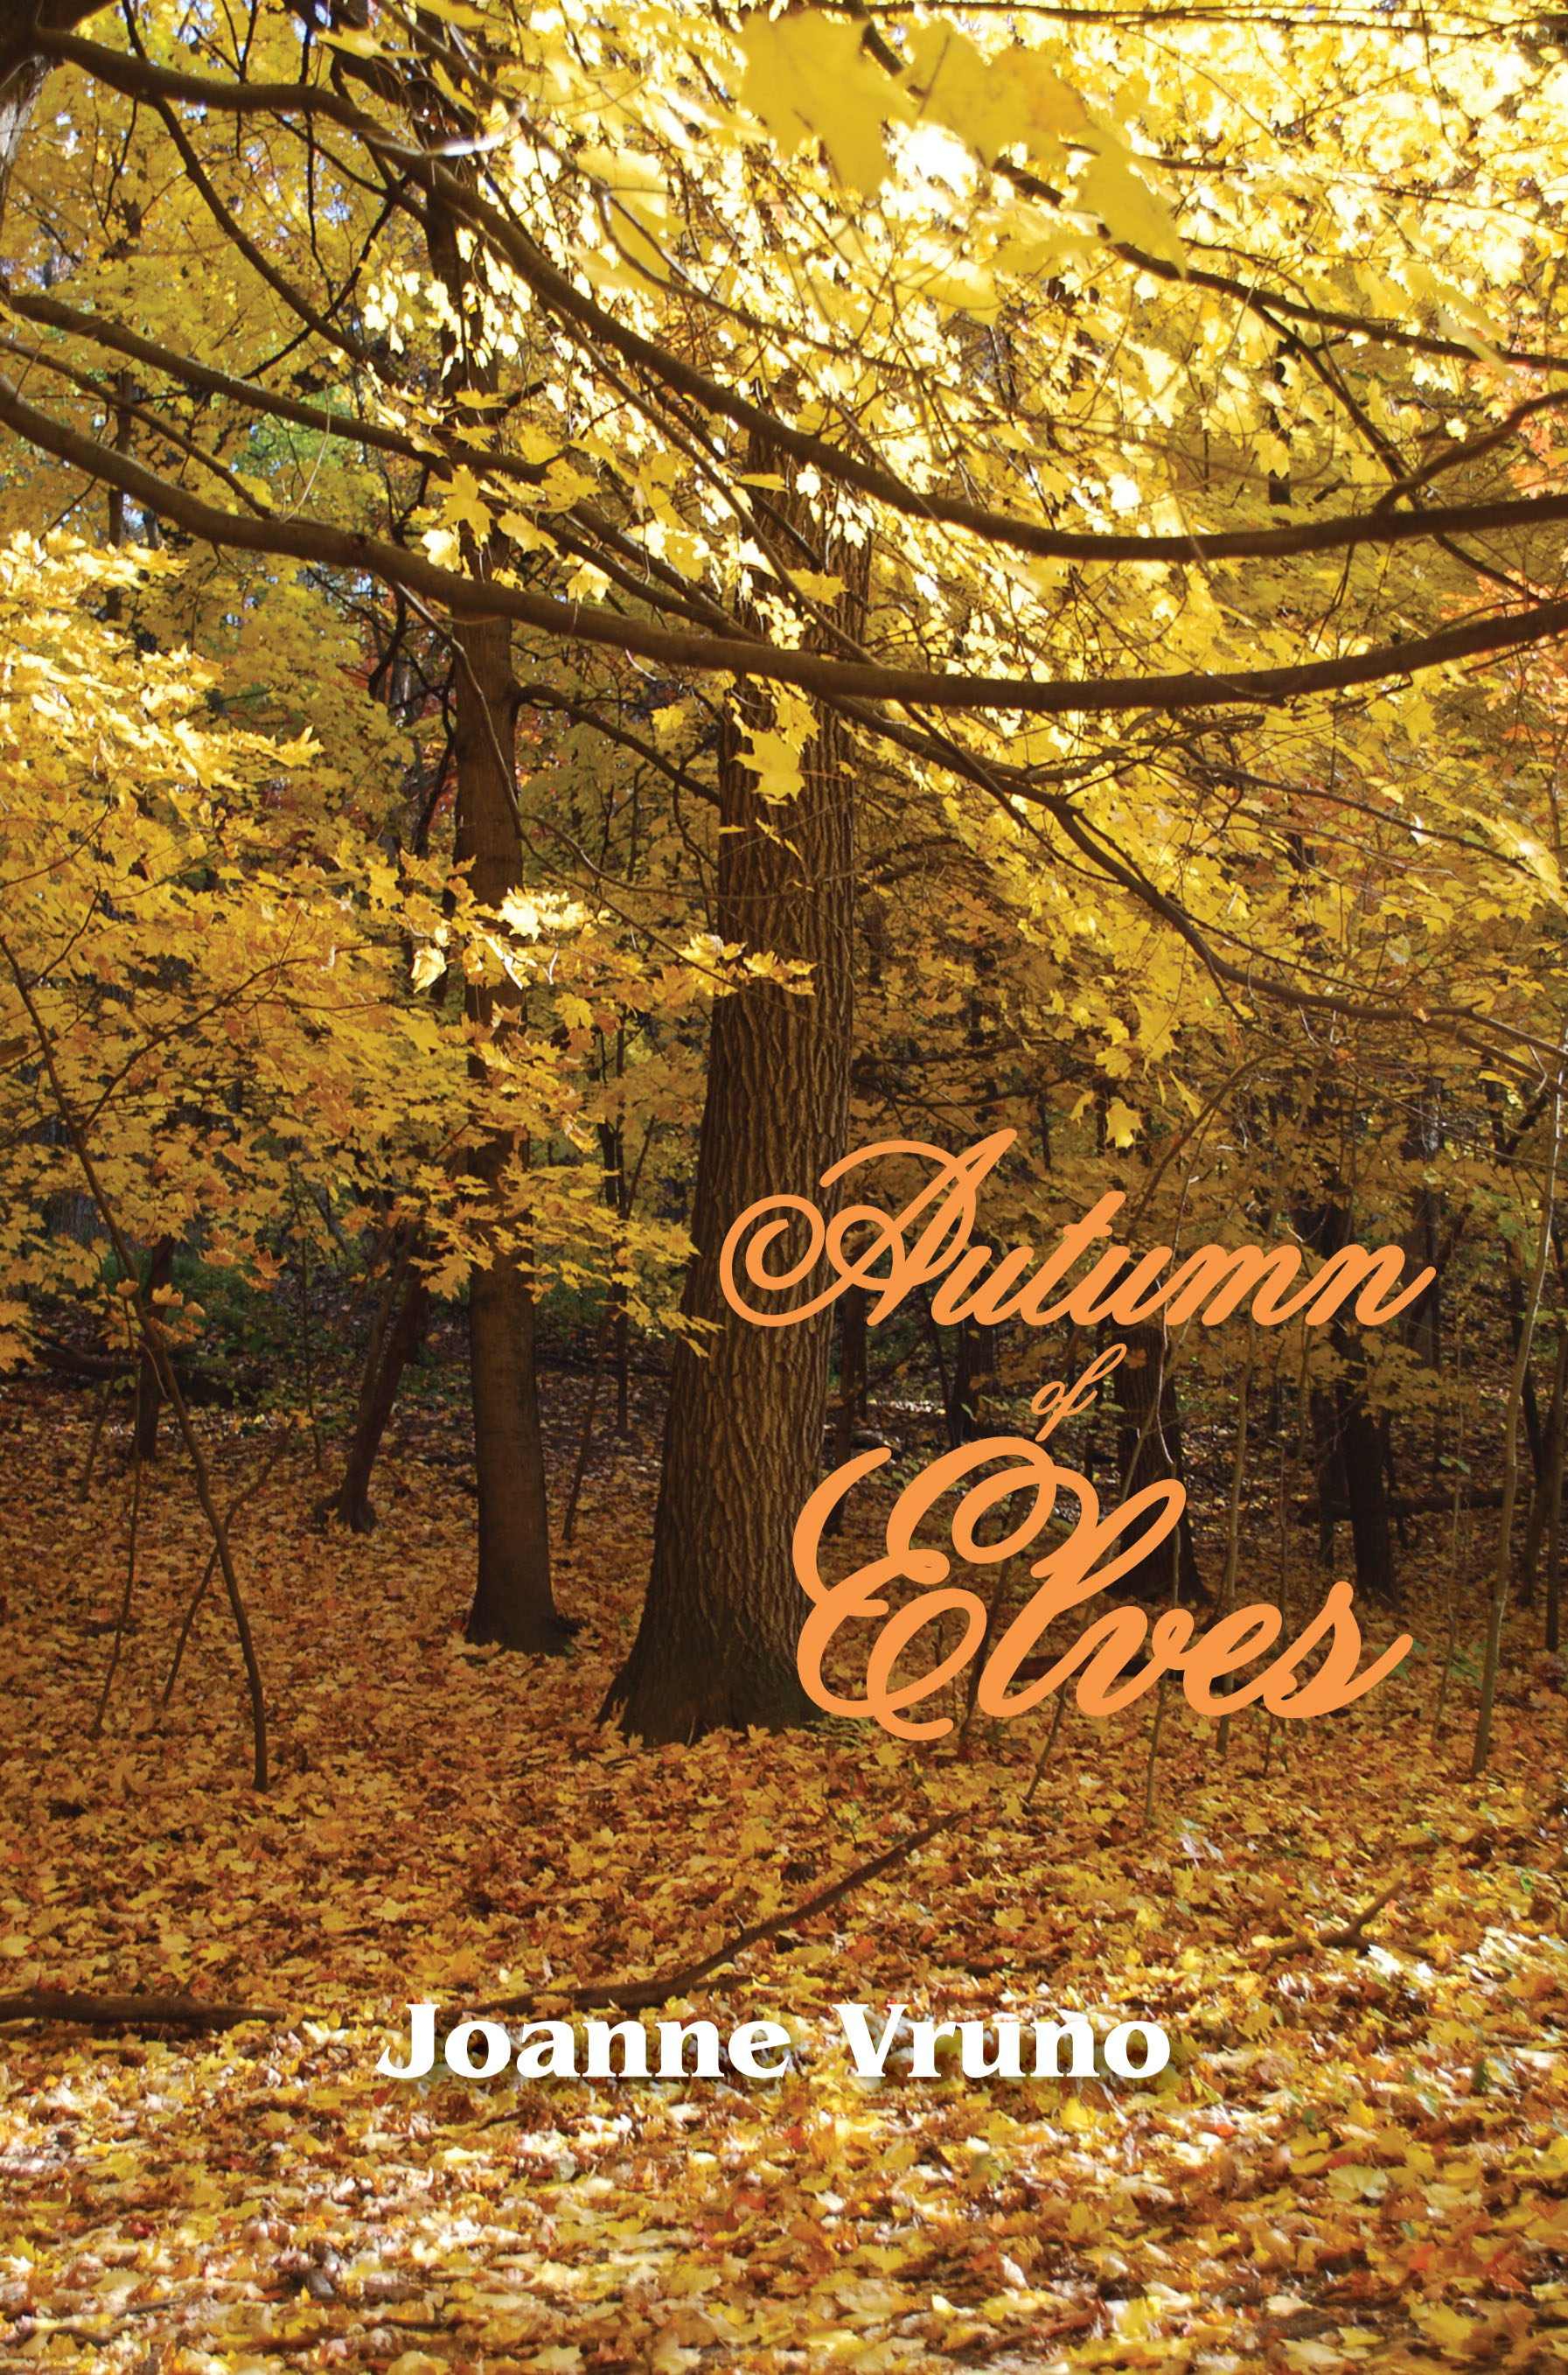 Autumn of Elves